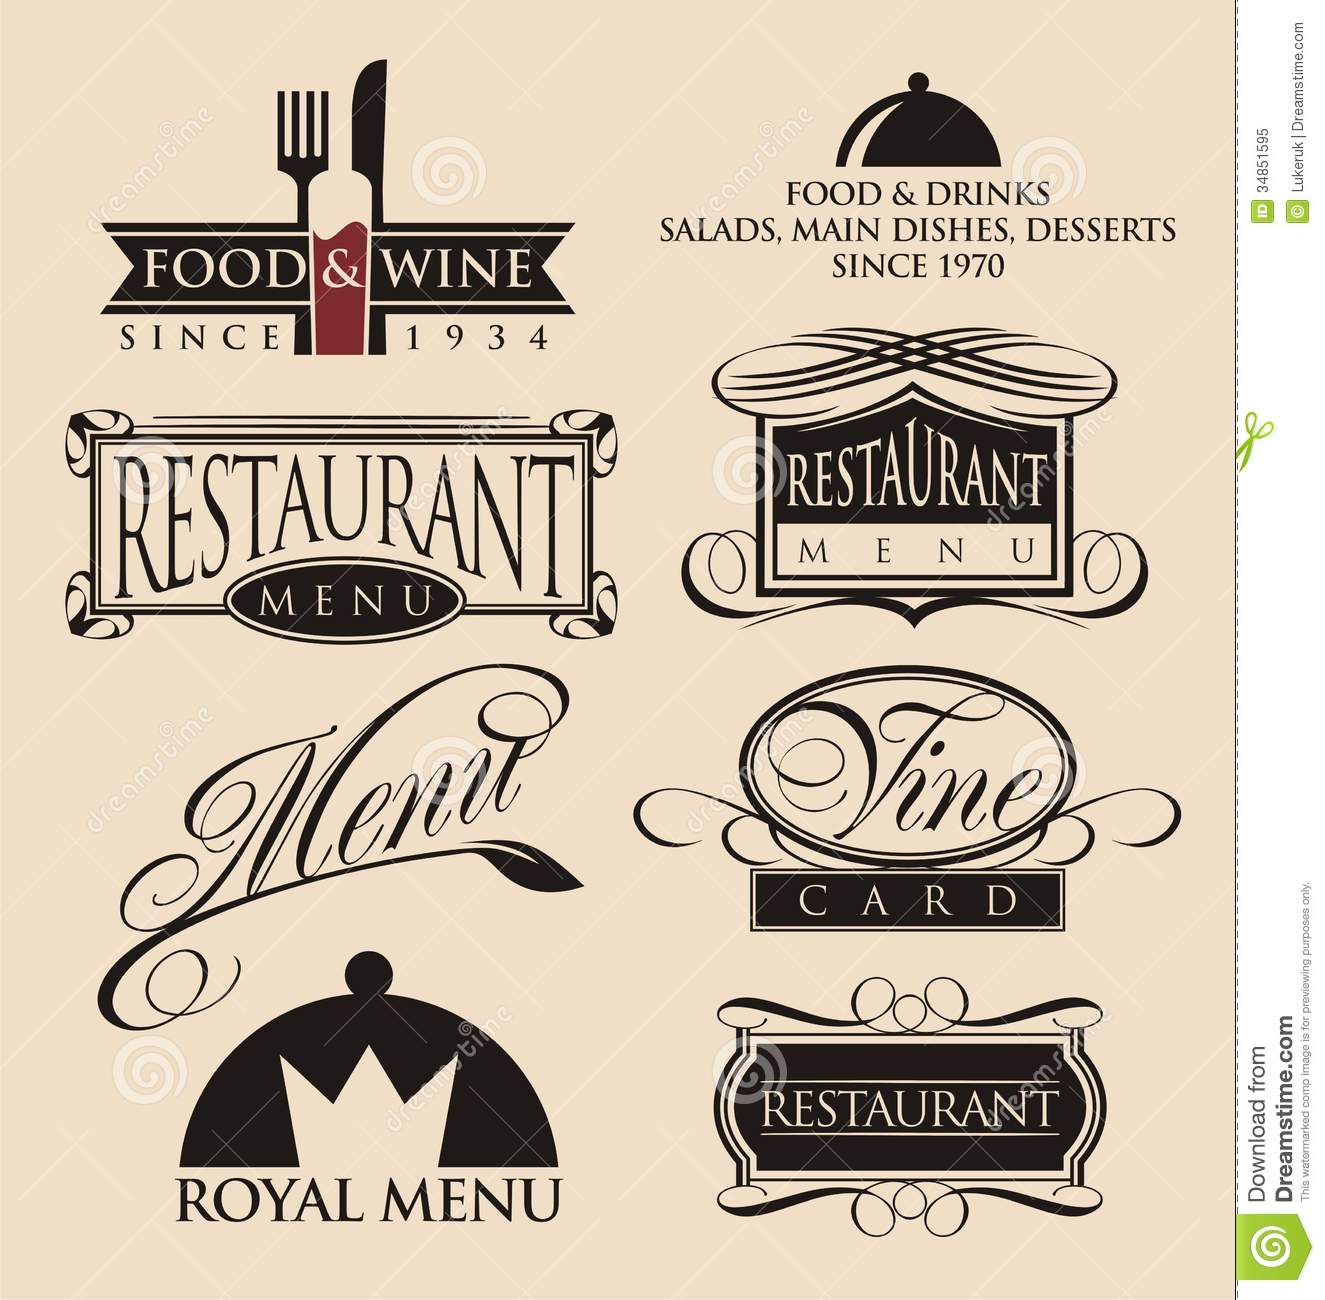 Vintage Restaurant Logos Collection Royalty Free Stock Photo - Image ...